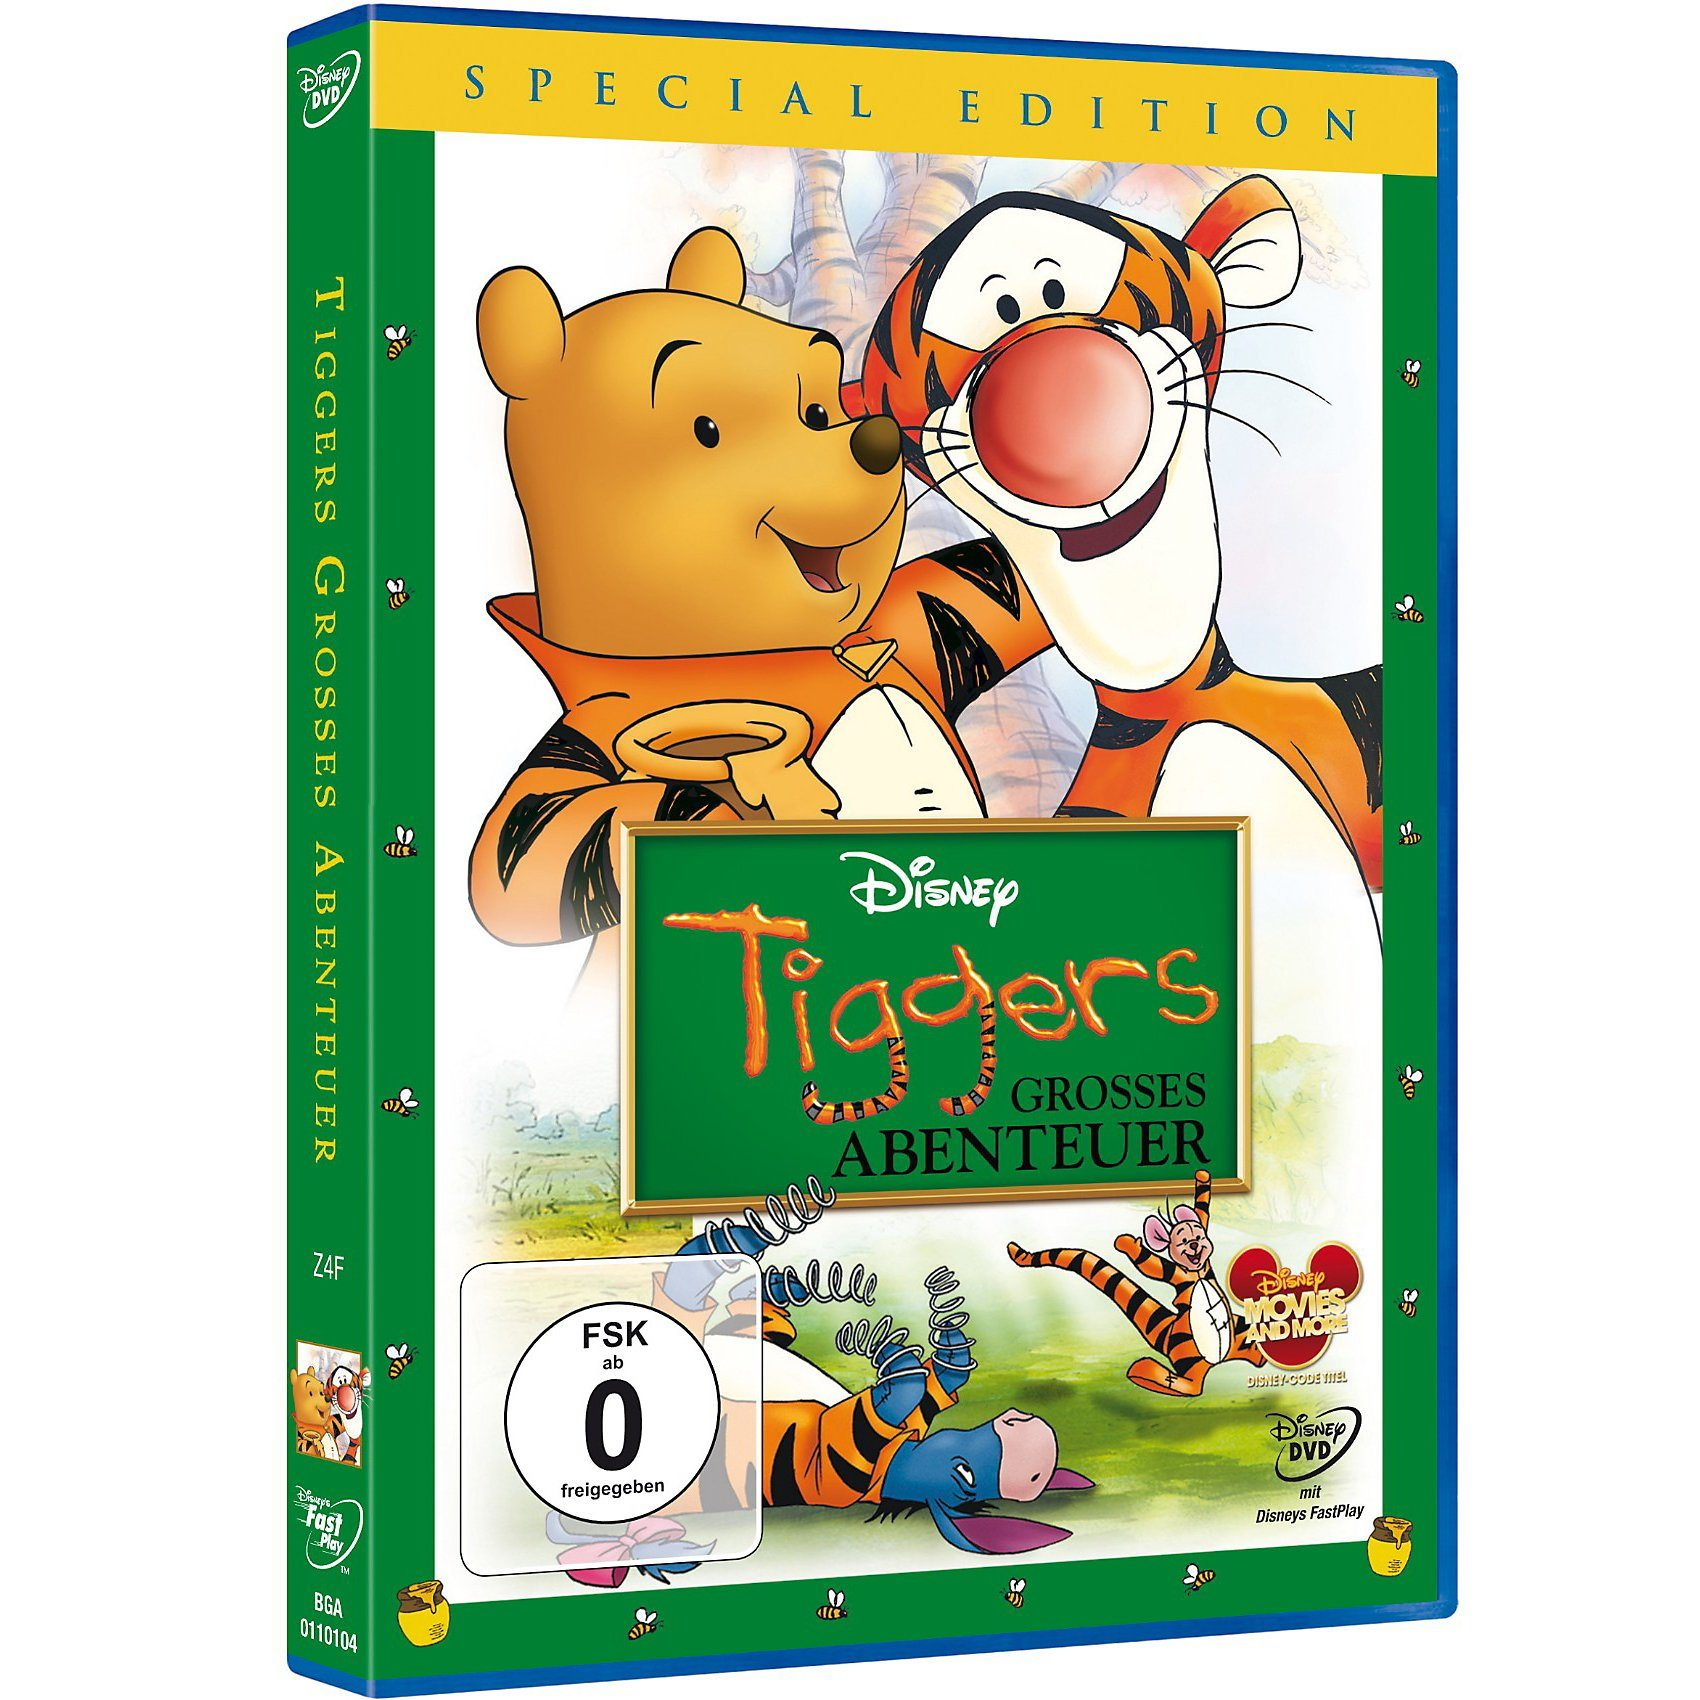 Disney DVD Tiggers großes Abenteuer (Special Edition)